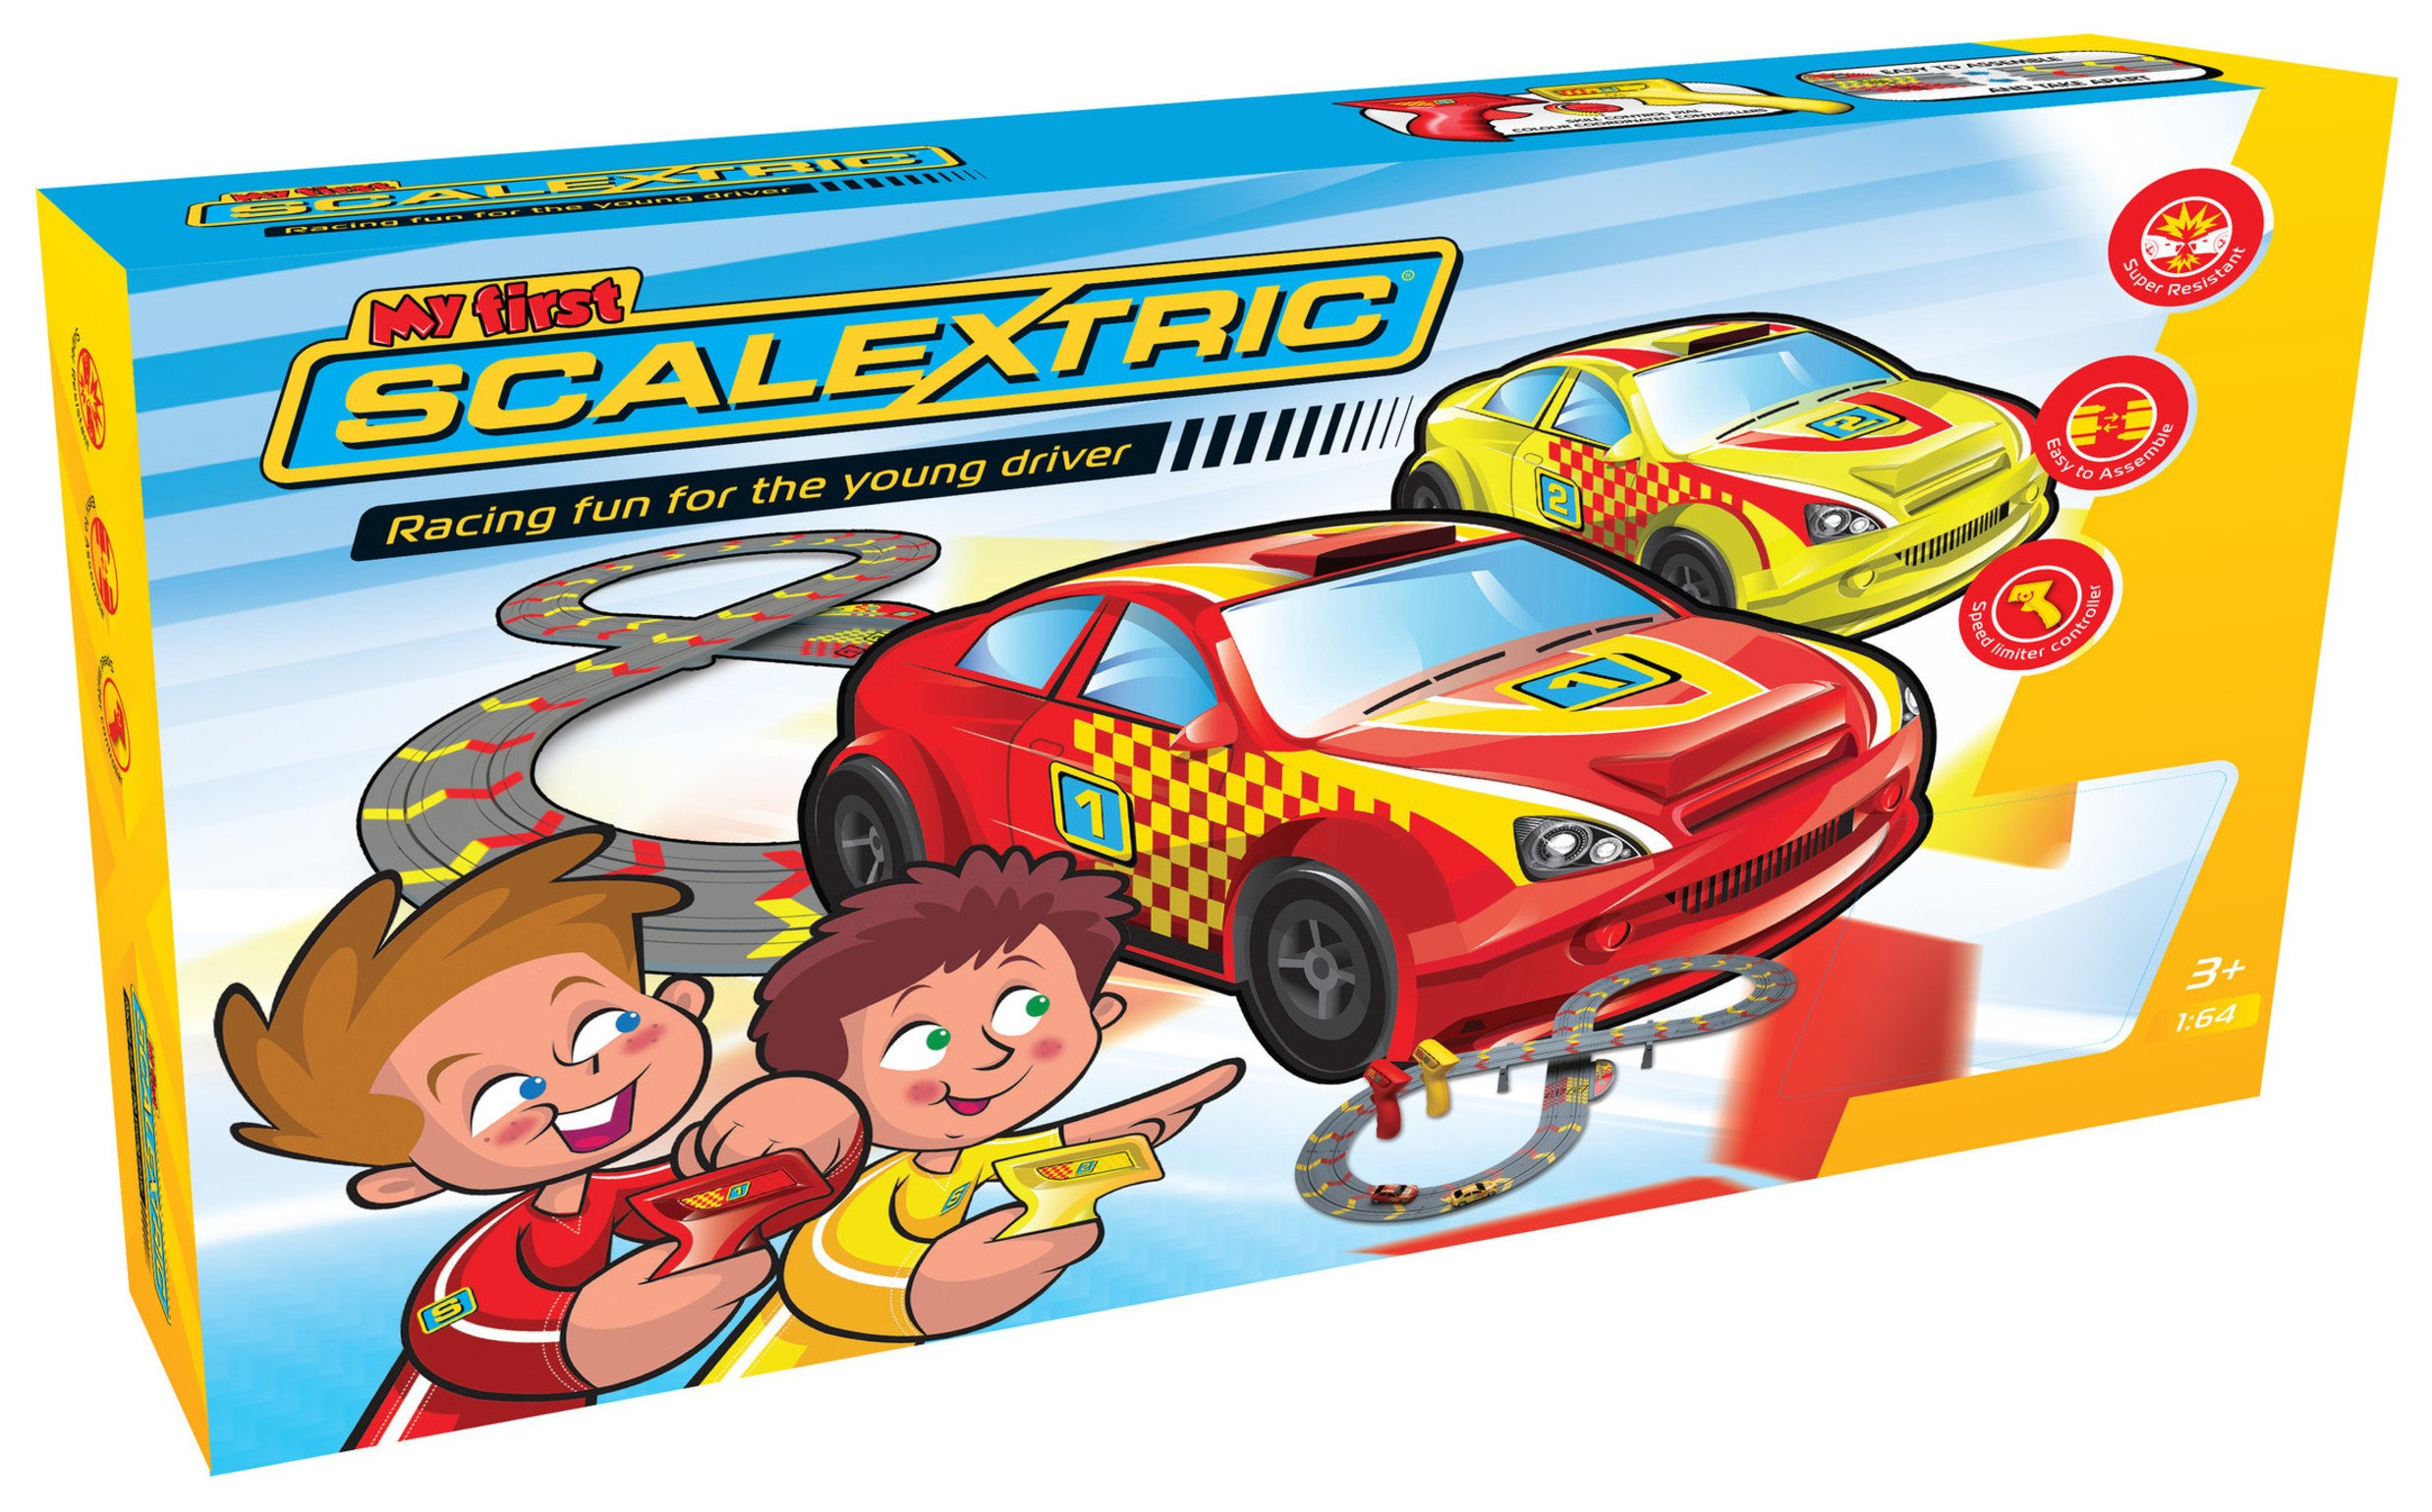 My First - Scalextric.